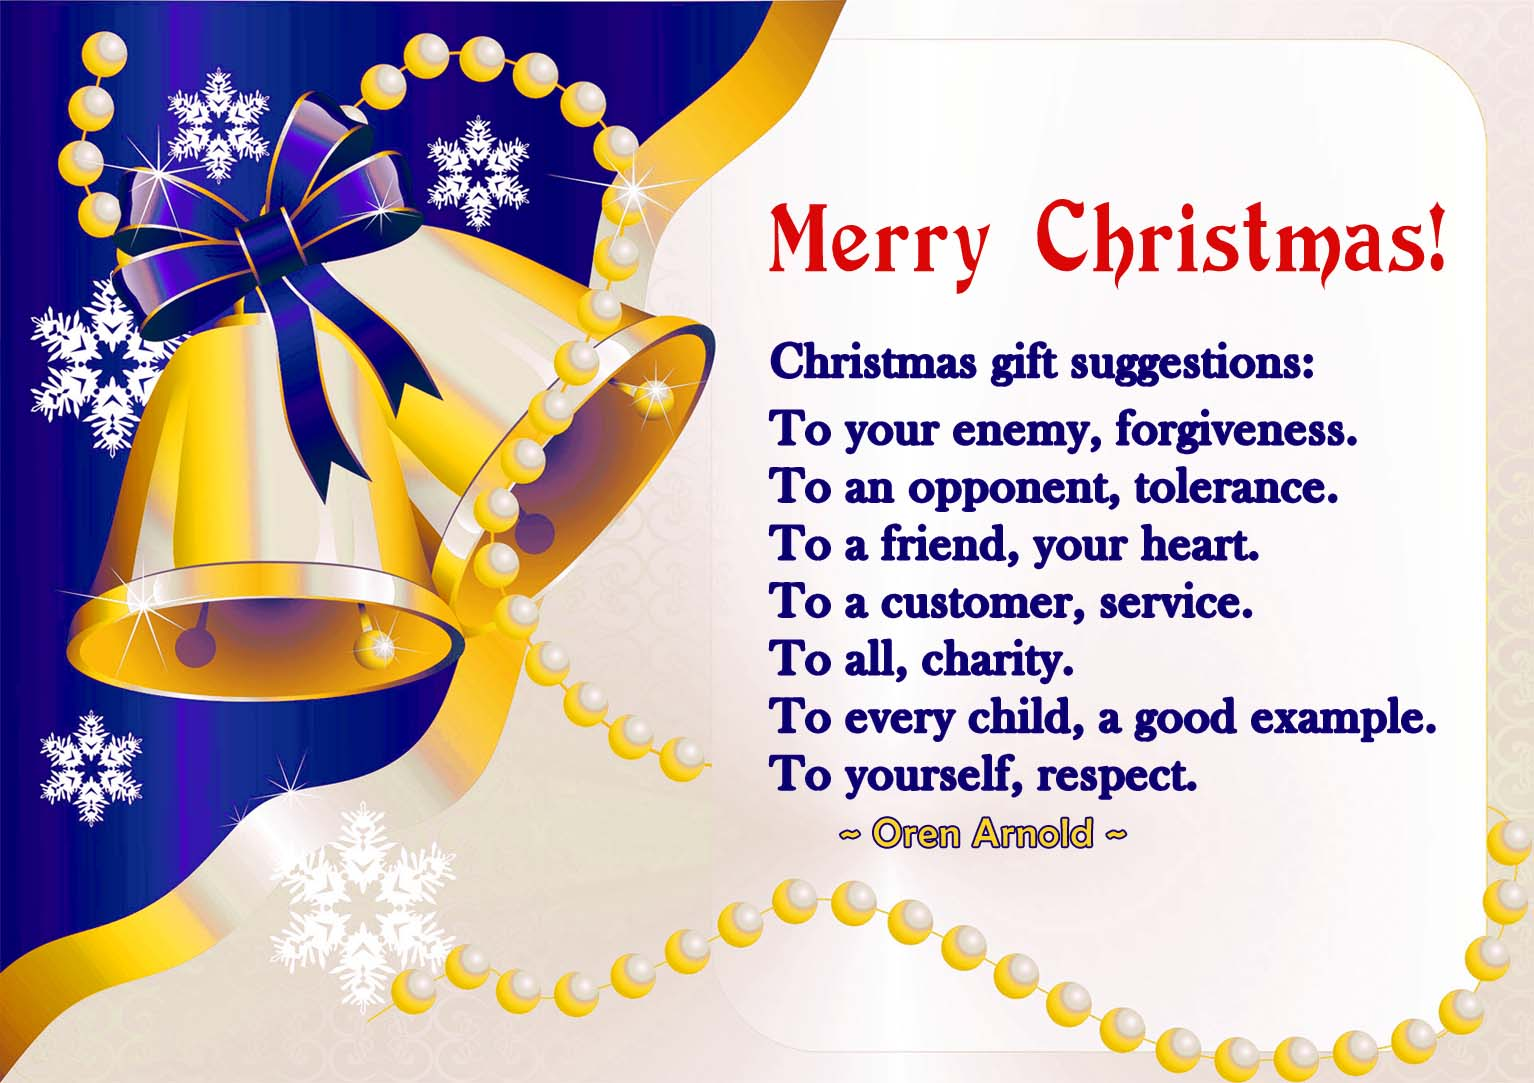 Modern Christmas card, blue with golden bells and a quote on gifts by Oren Arnold